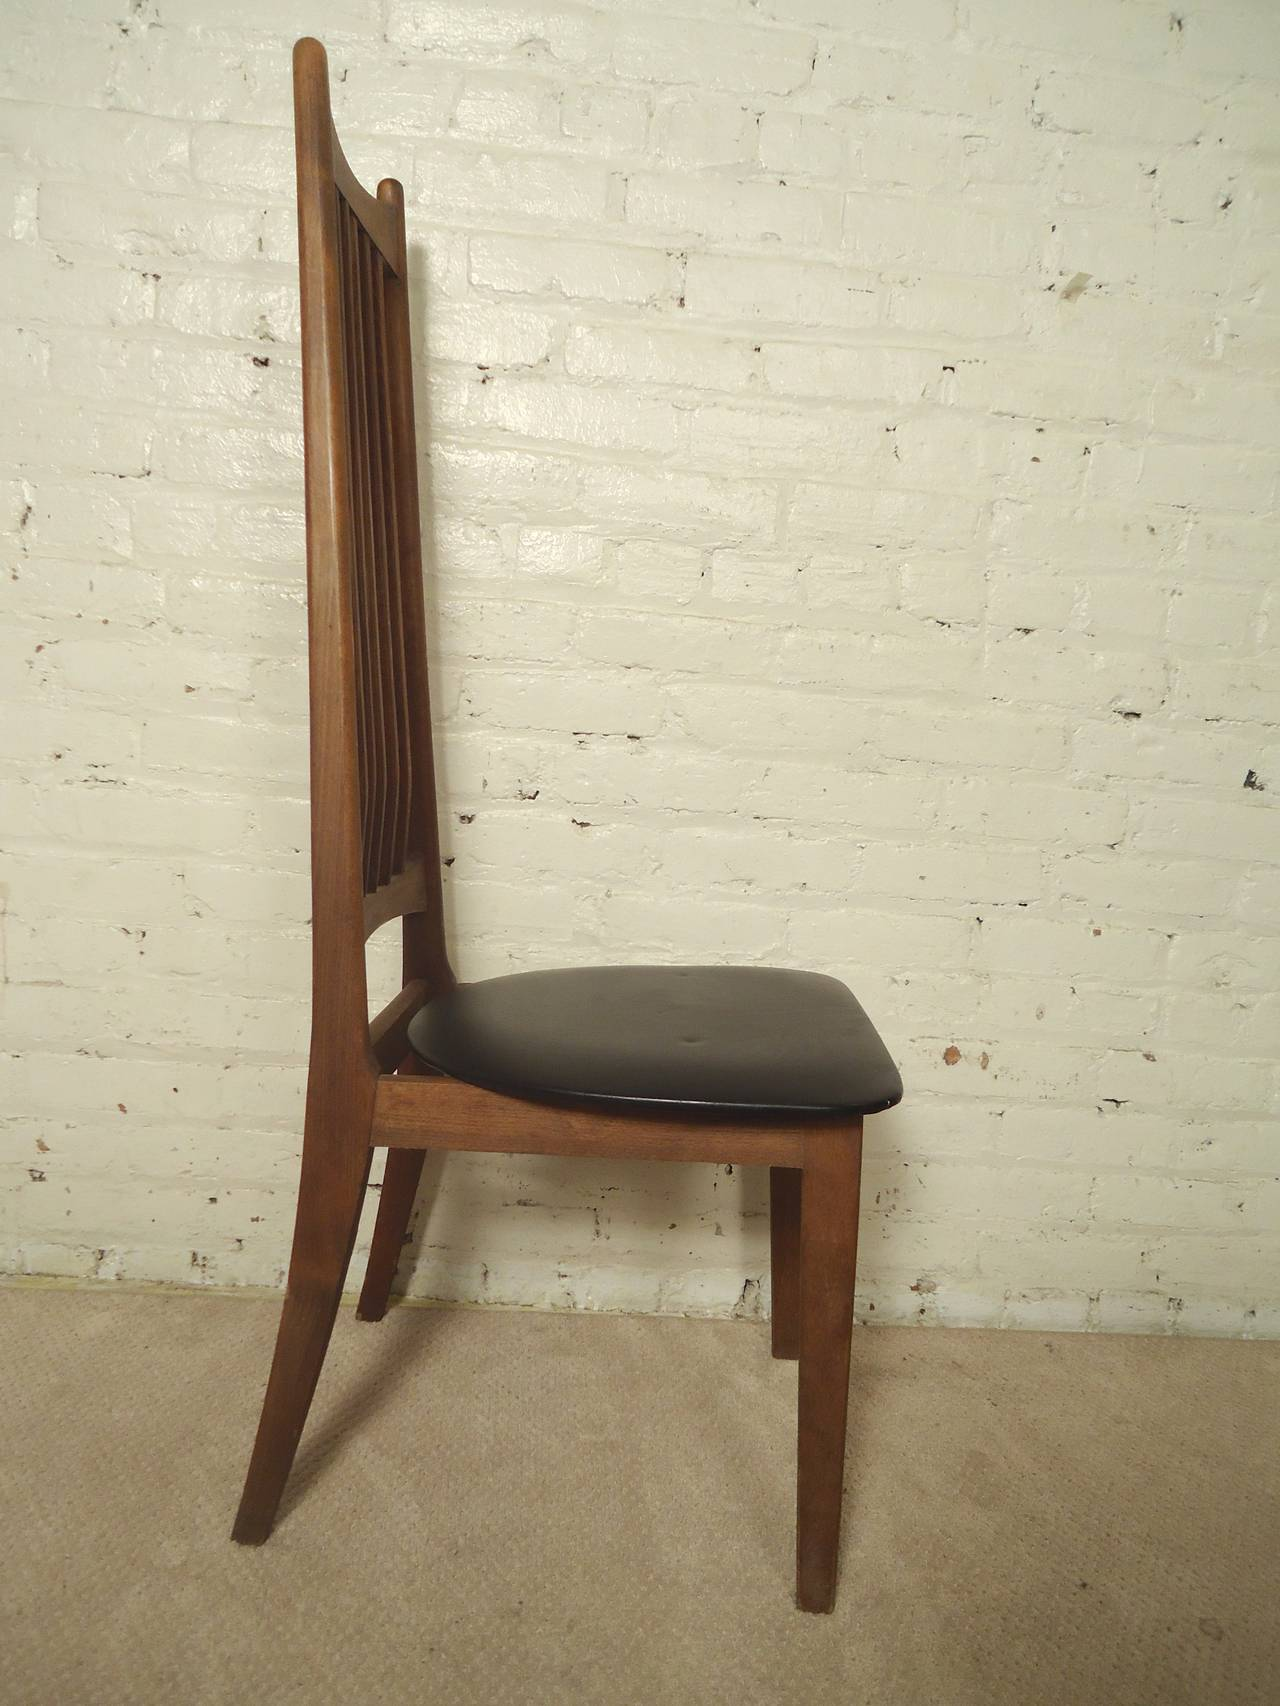 Four Midcentury High Back Chairs In Good Condition For Sale In Brooklyn, NY